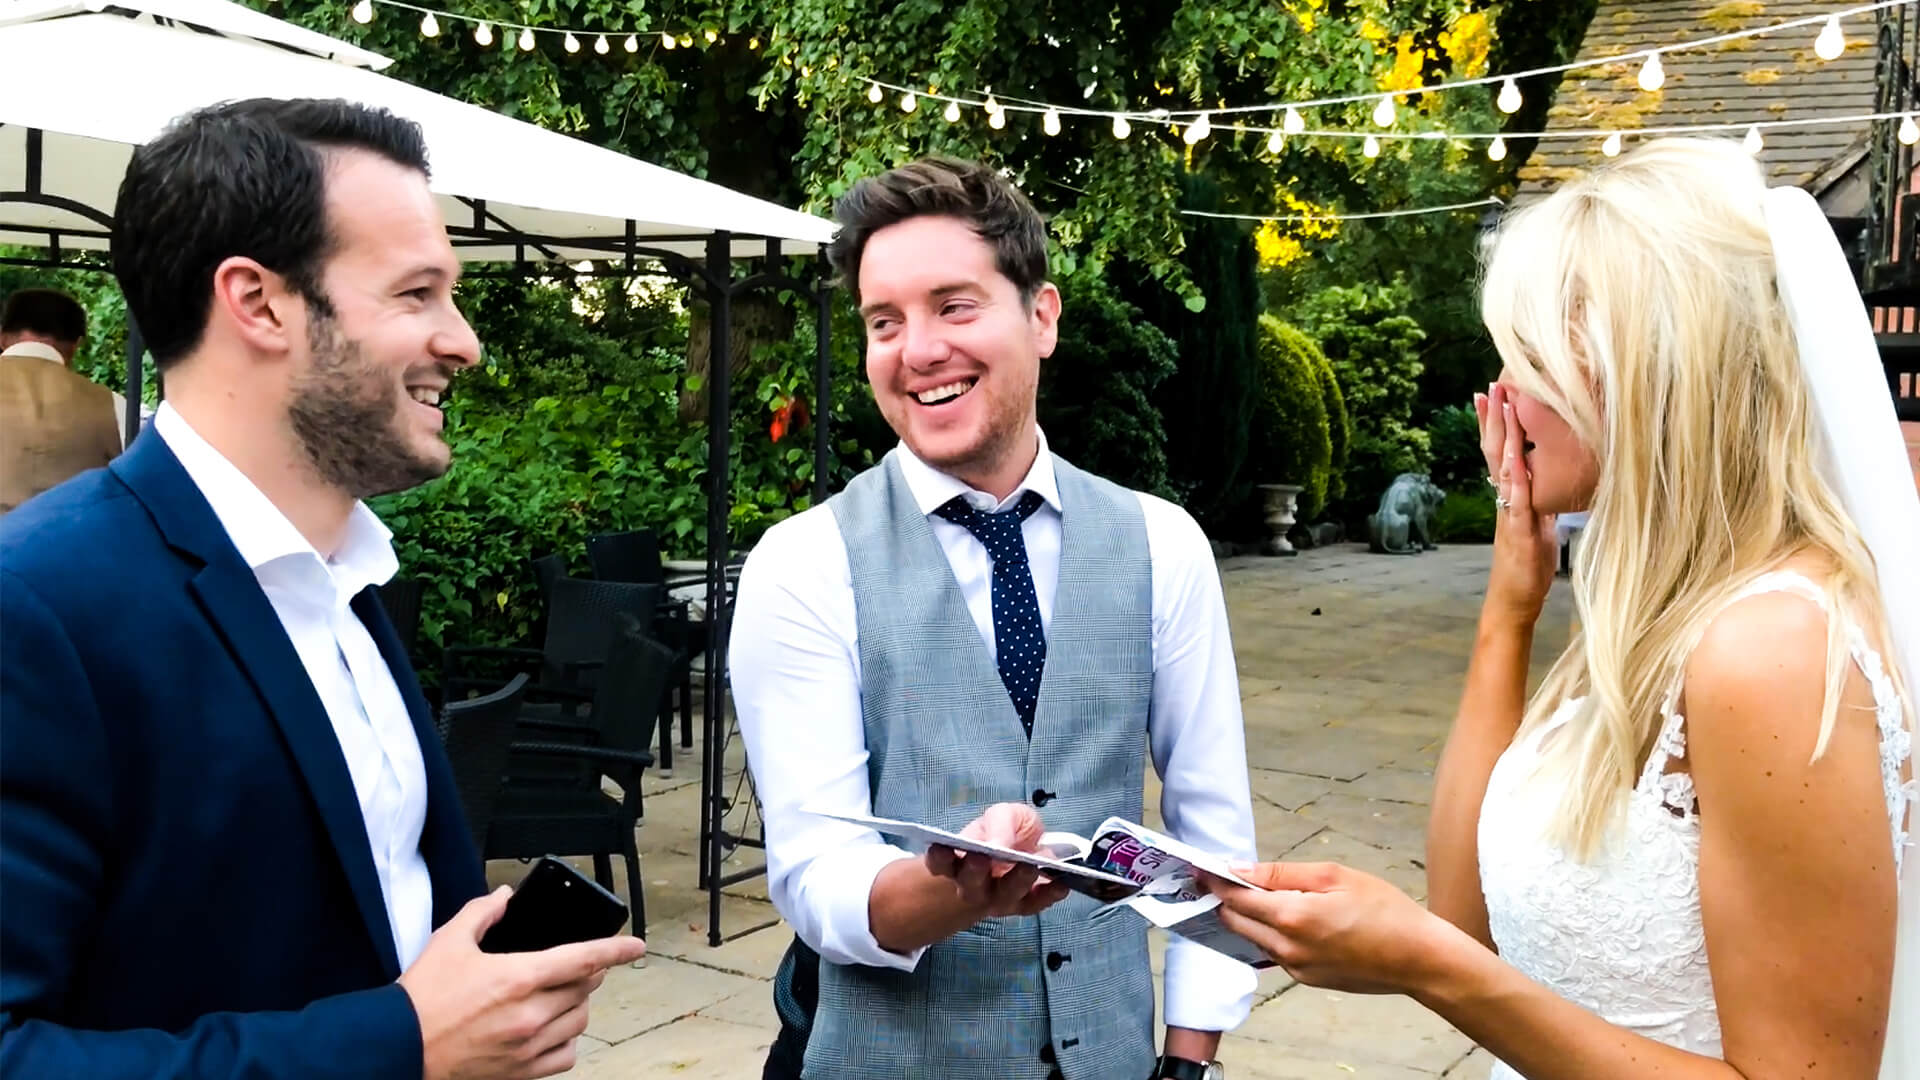 Manchester wedding magician Aaron Calvert stunning bride and groom in cheshire wedding with incredible magic